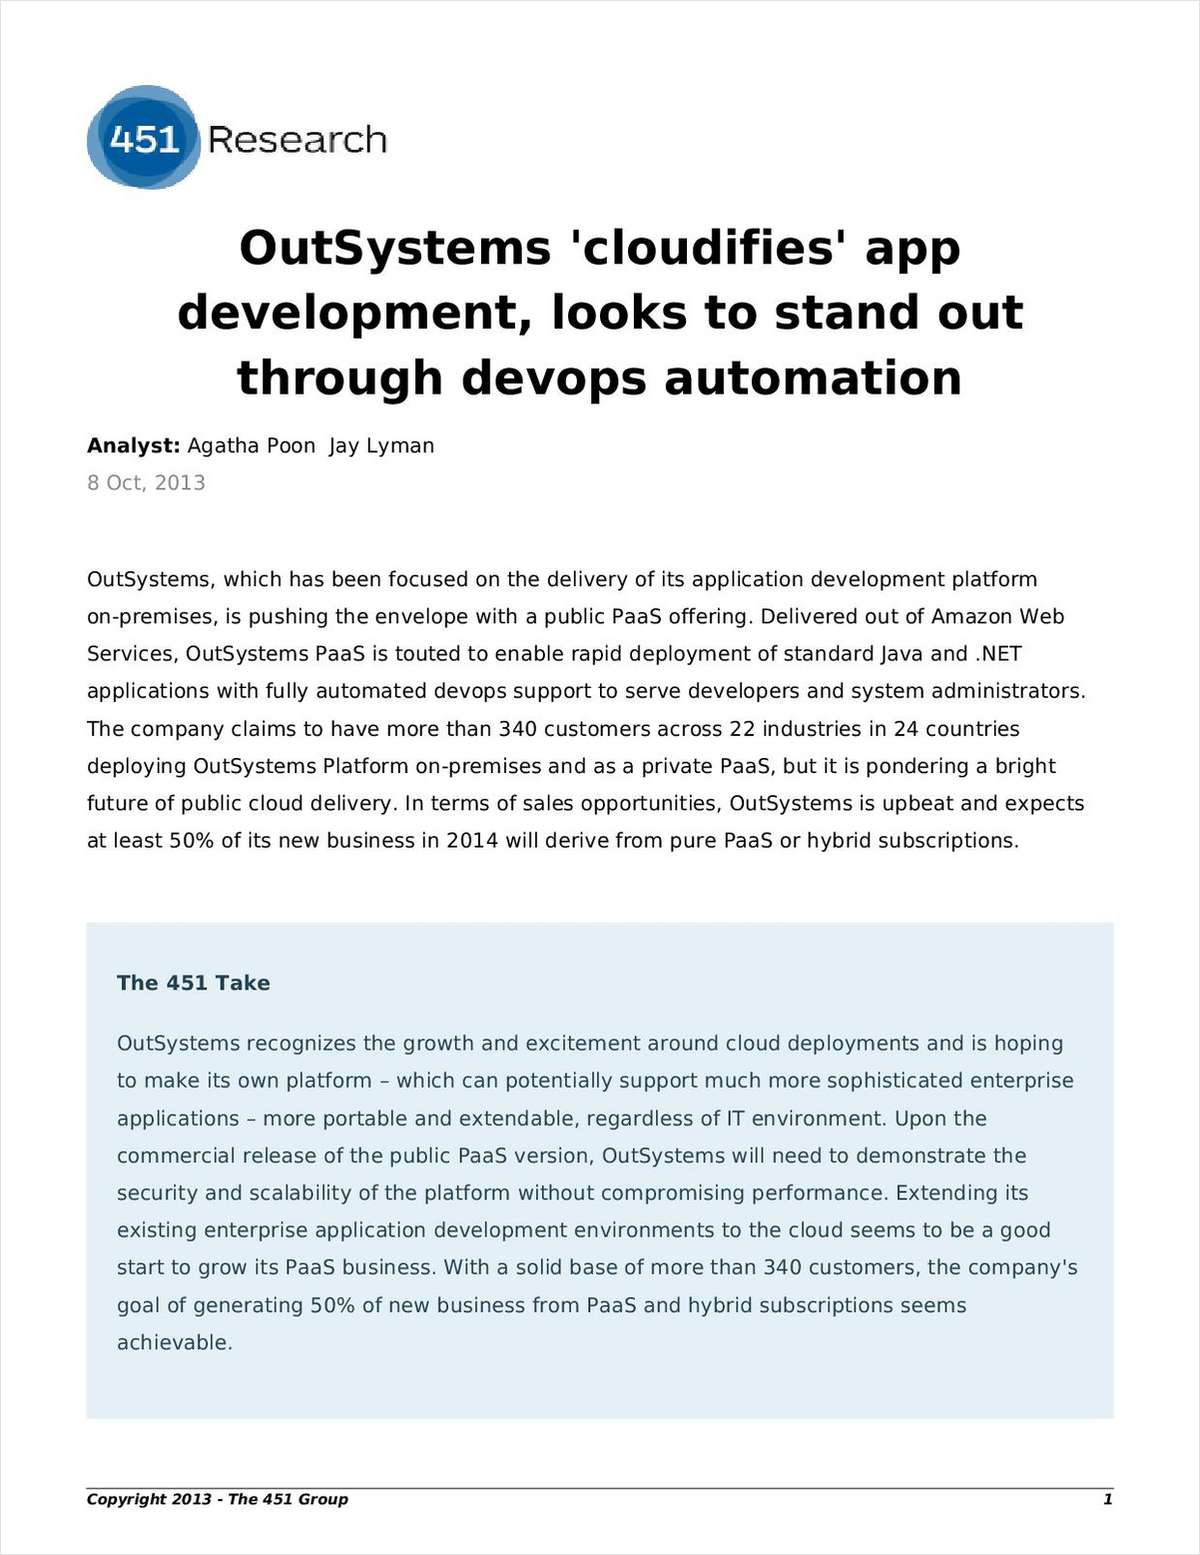 OutSystems 'Cloudifies' App Development: Looks to Stand Out Through DevOps Automation